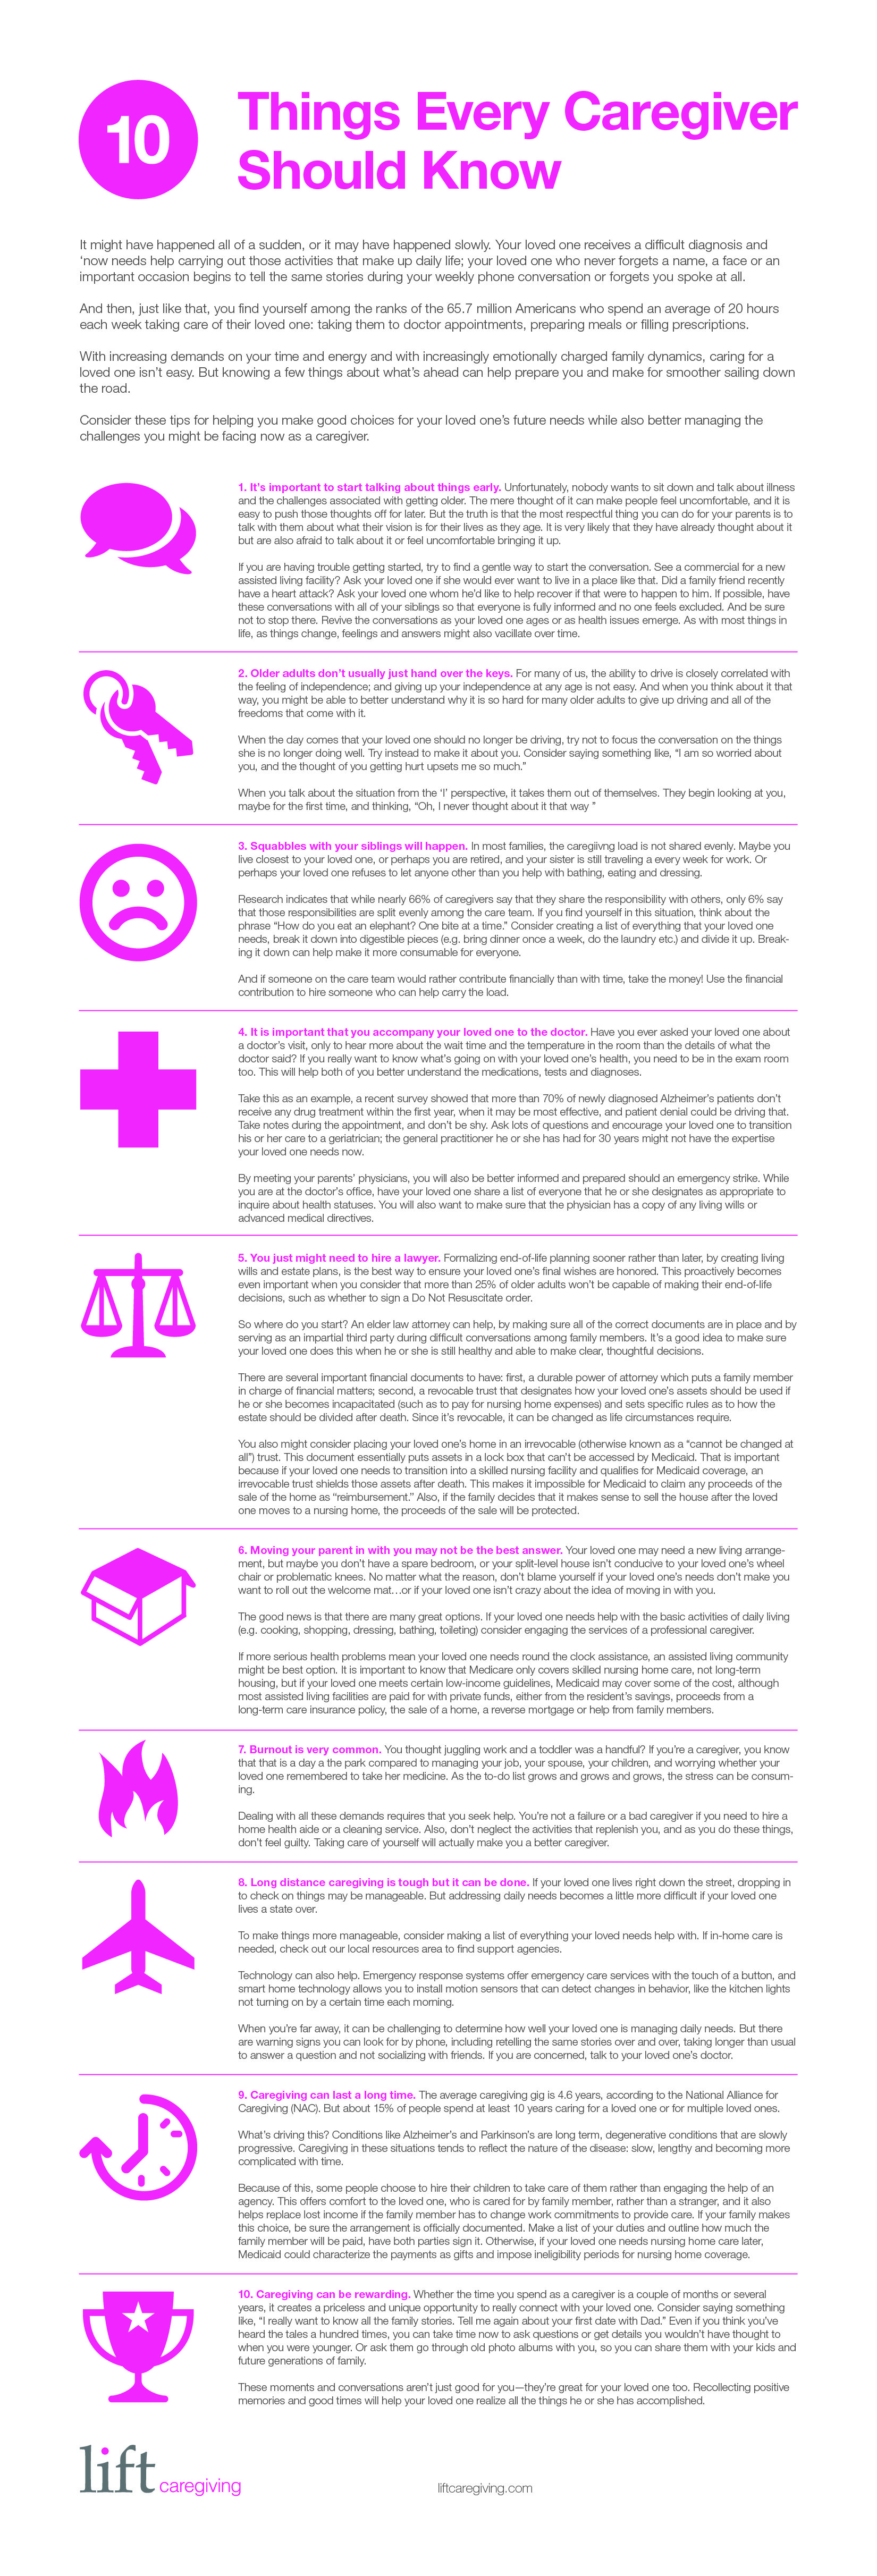 10 Things Every Caregiver Should Know Infographic Articles Lift Caregiving Caregiver Caregiver Resources Infographic